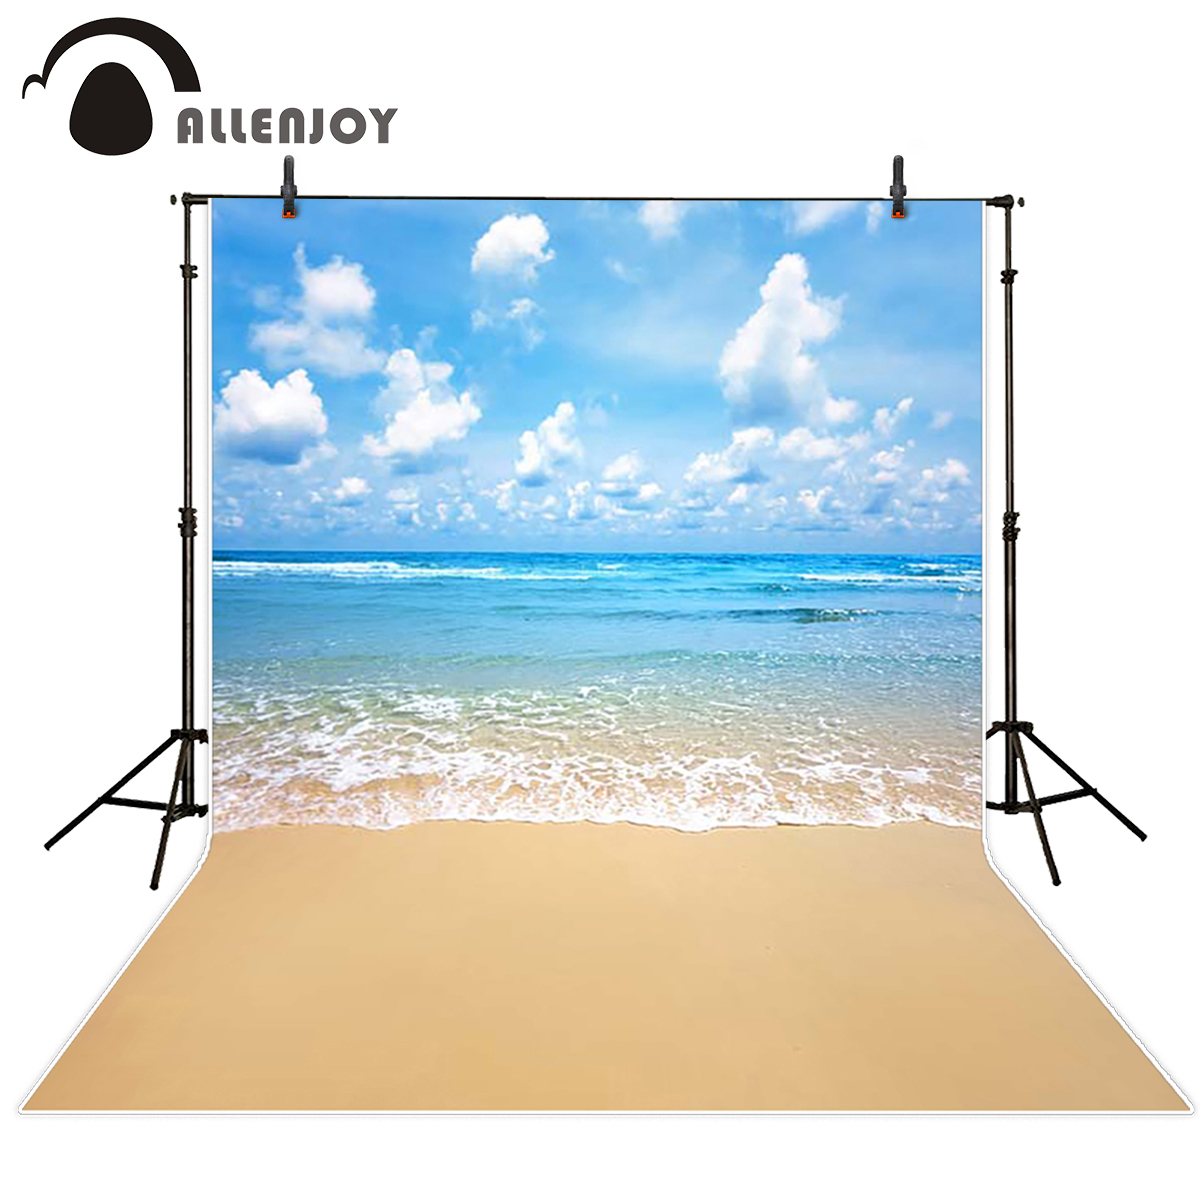 Allenjoy scenery photo backdrop Fresh beach summer water seaside backgrounds for photo studio background for photographic studio